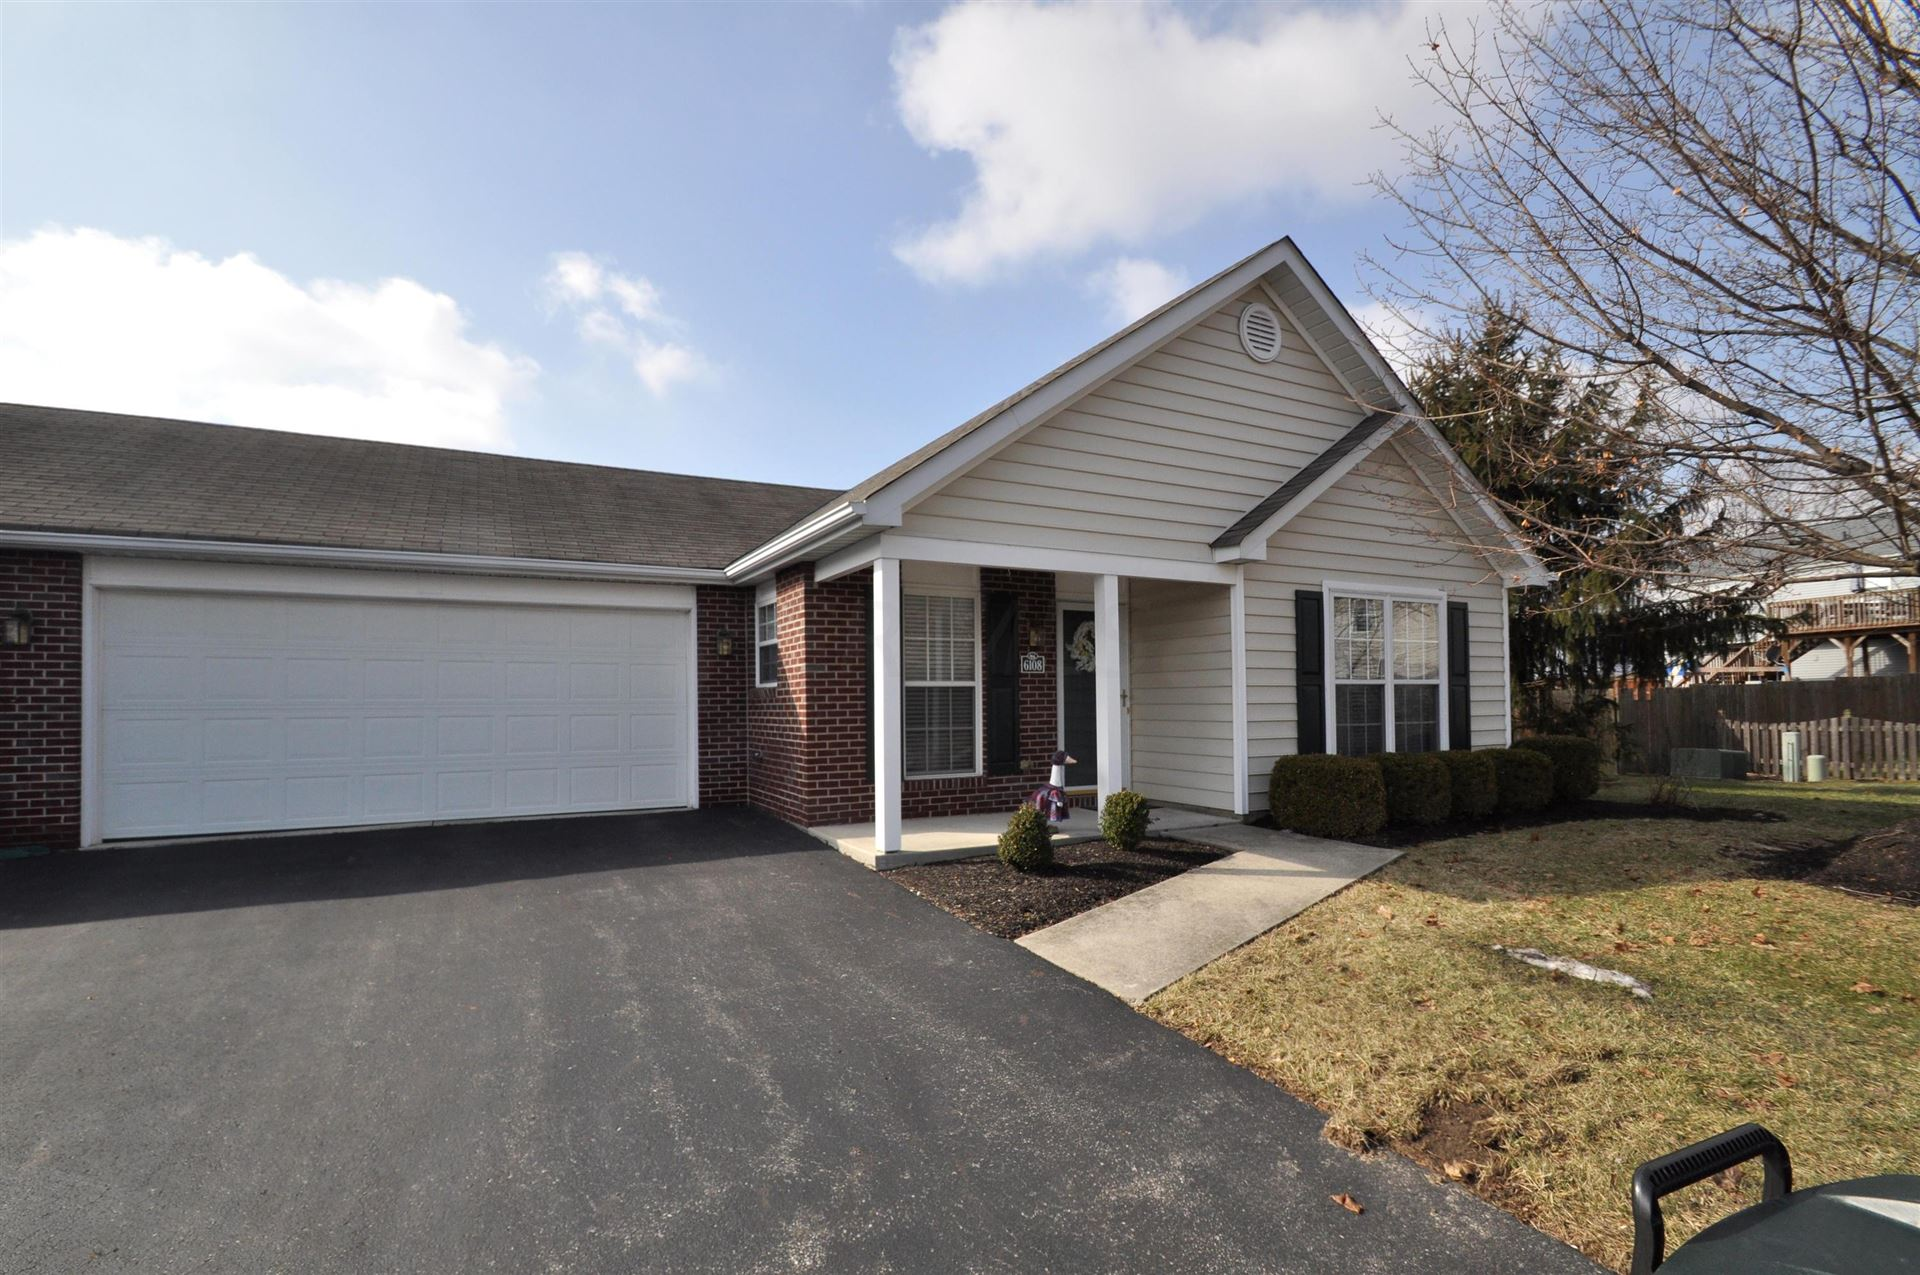 6108 Murphys Pond Road, Canal Winchester, OH 43110 - MLS#: 221006117